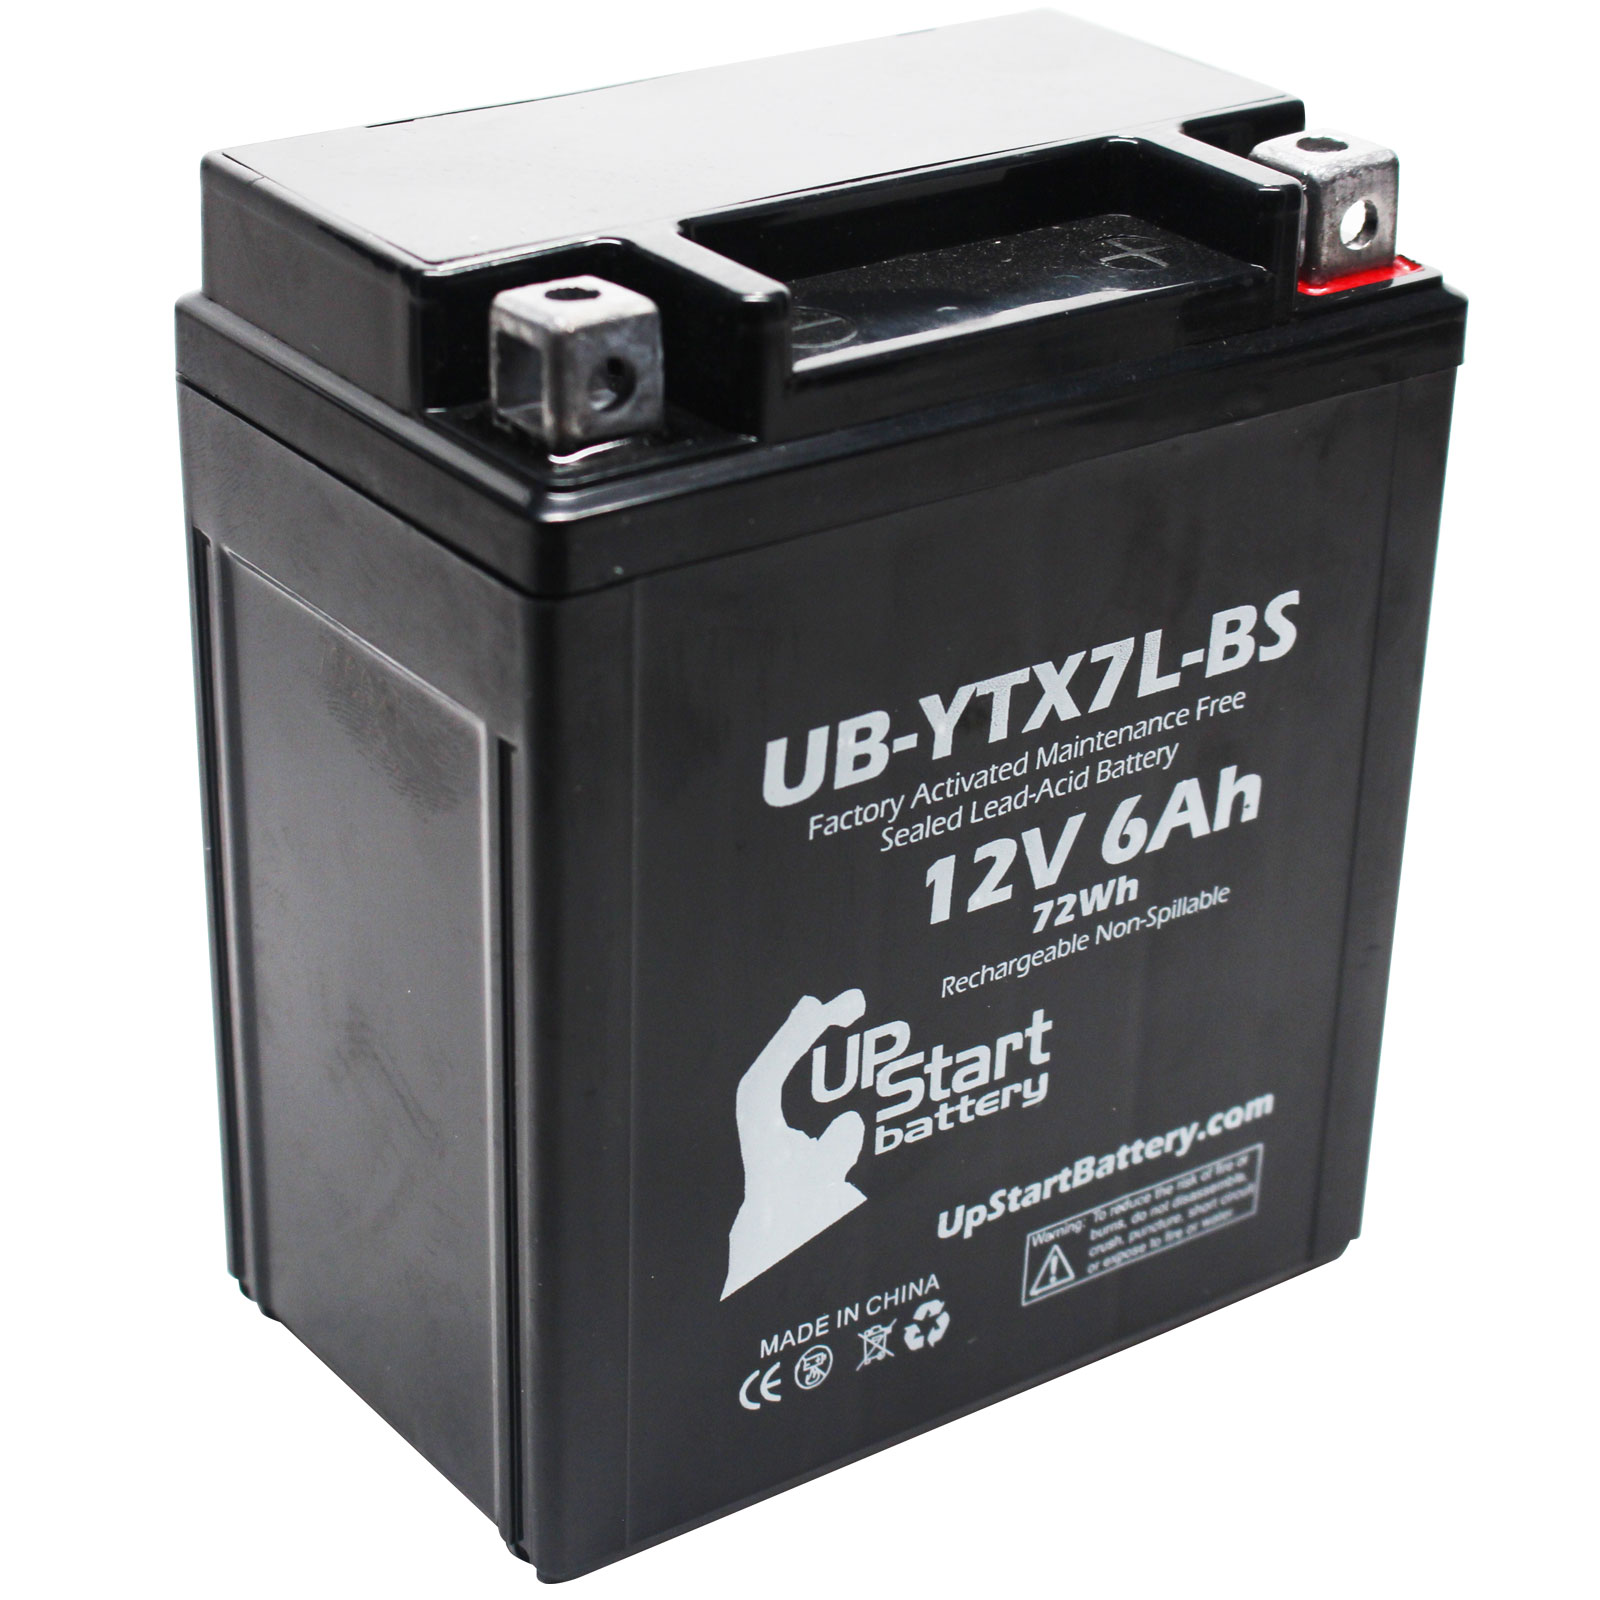 Replacement 2006 Kawasaki EX250 Ninja 250CC Factory Activated, Maintenance Free, Motorcycle Battery - 12V, 6Ah, UB-YTX7L-BS